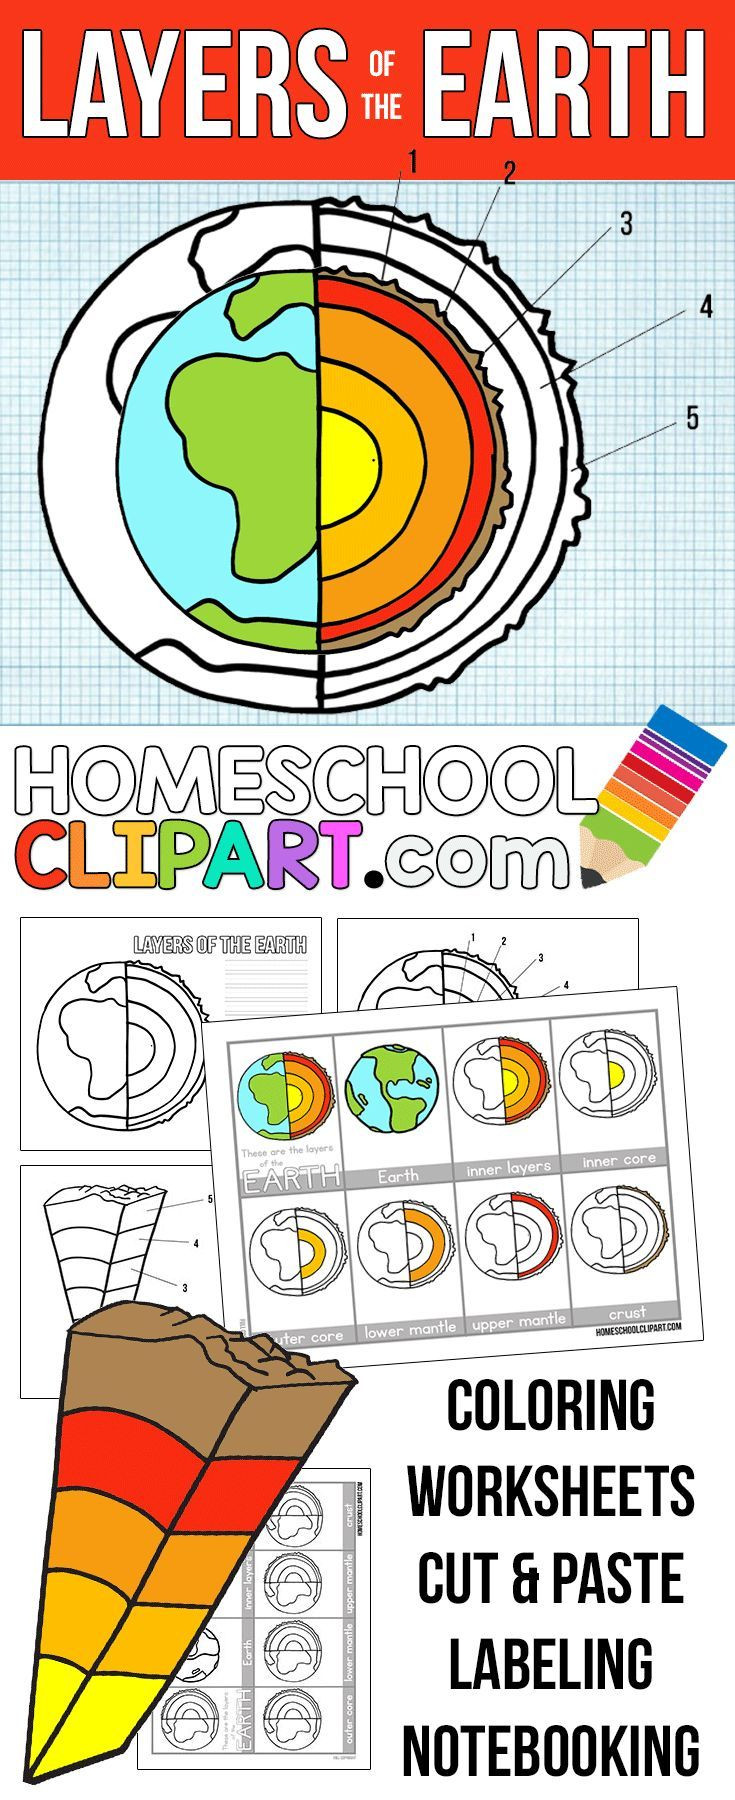 Earth Layers Worksheet Pdf Layers Of the Earth Clipart